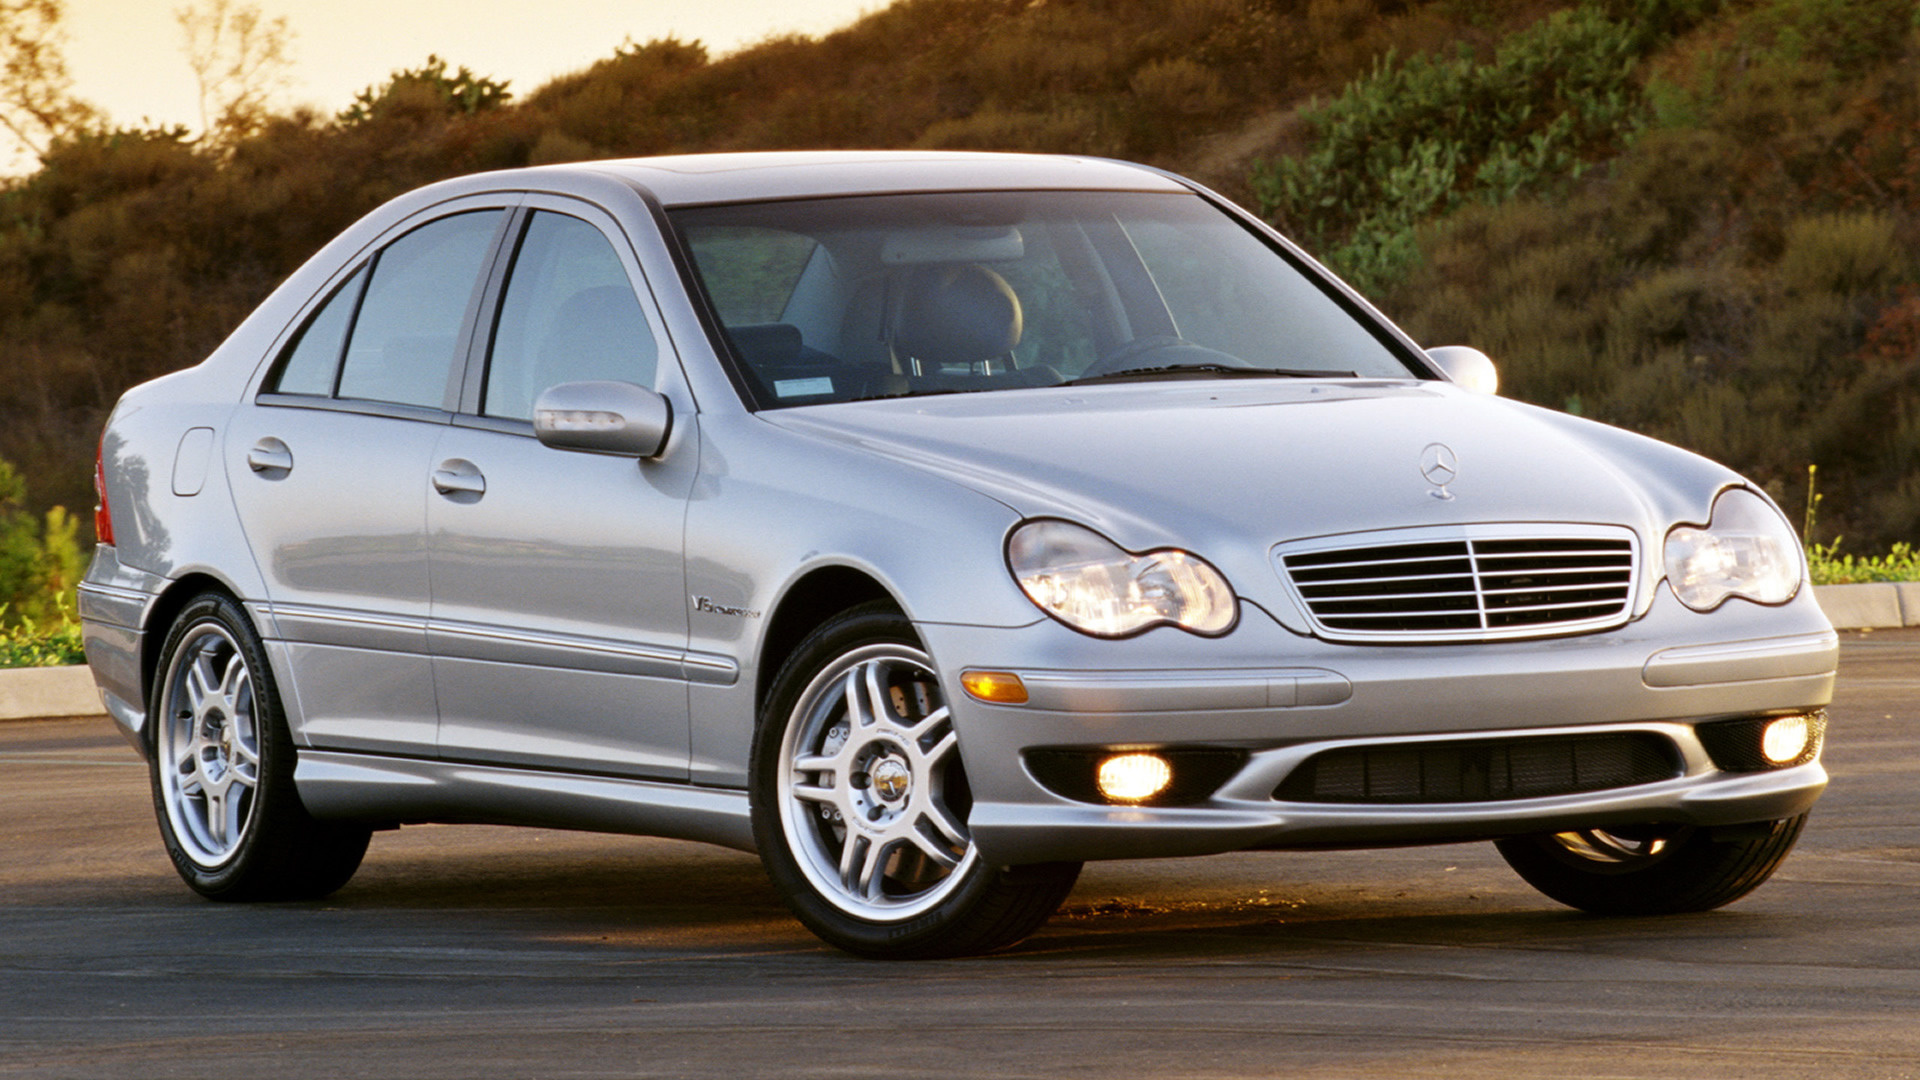 Mercedes-Benz C 32 AMG (2001) US Wallpapers and HD Images ...